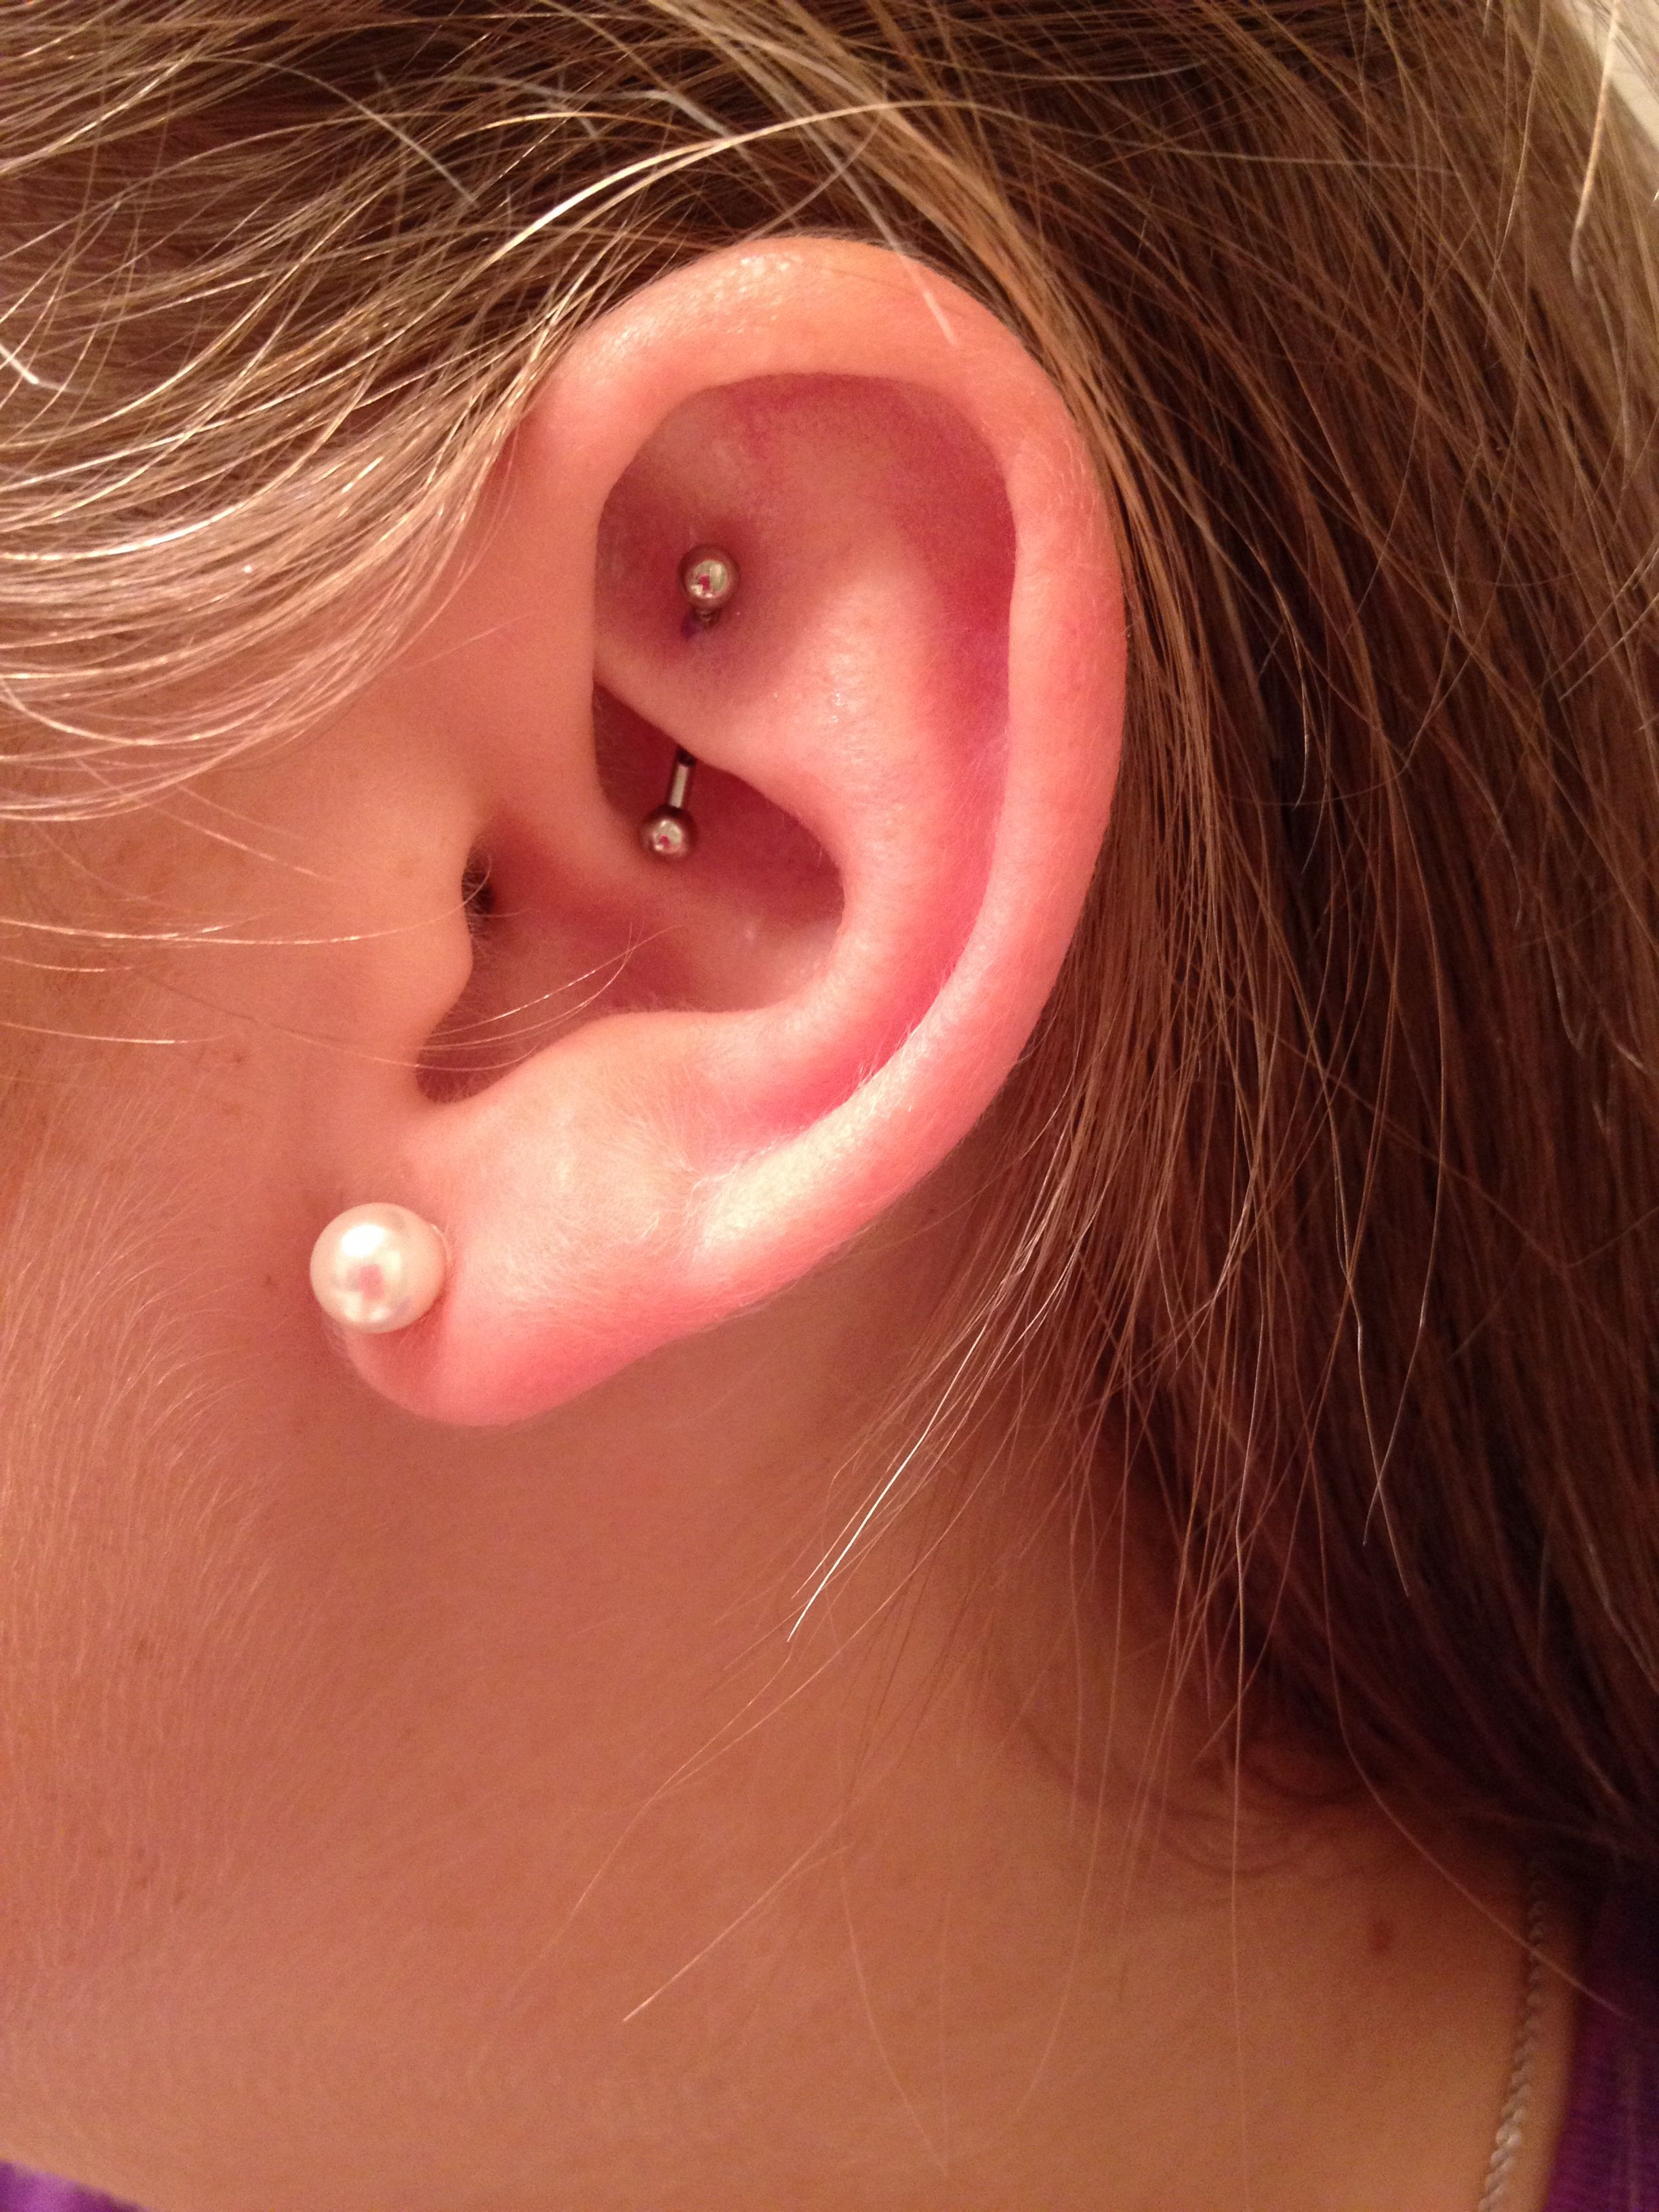 ear piercing rook - photo #32